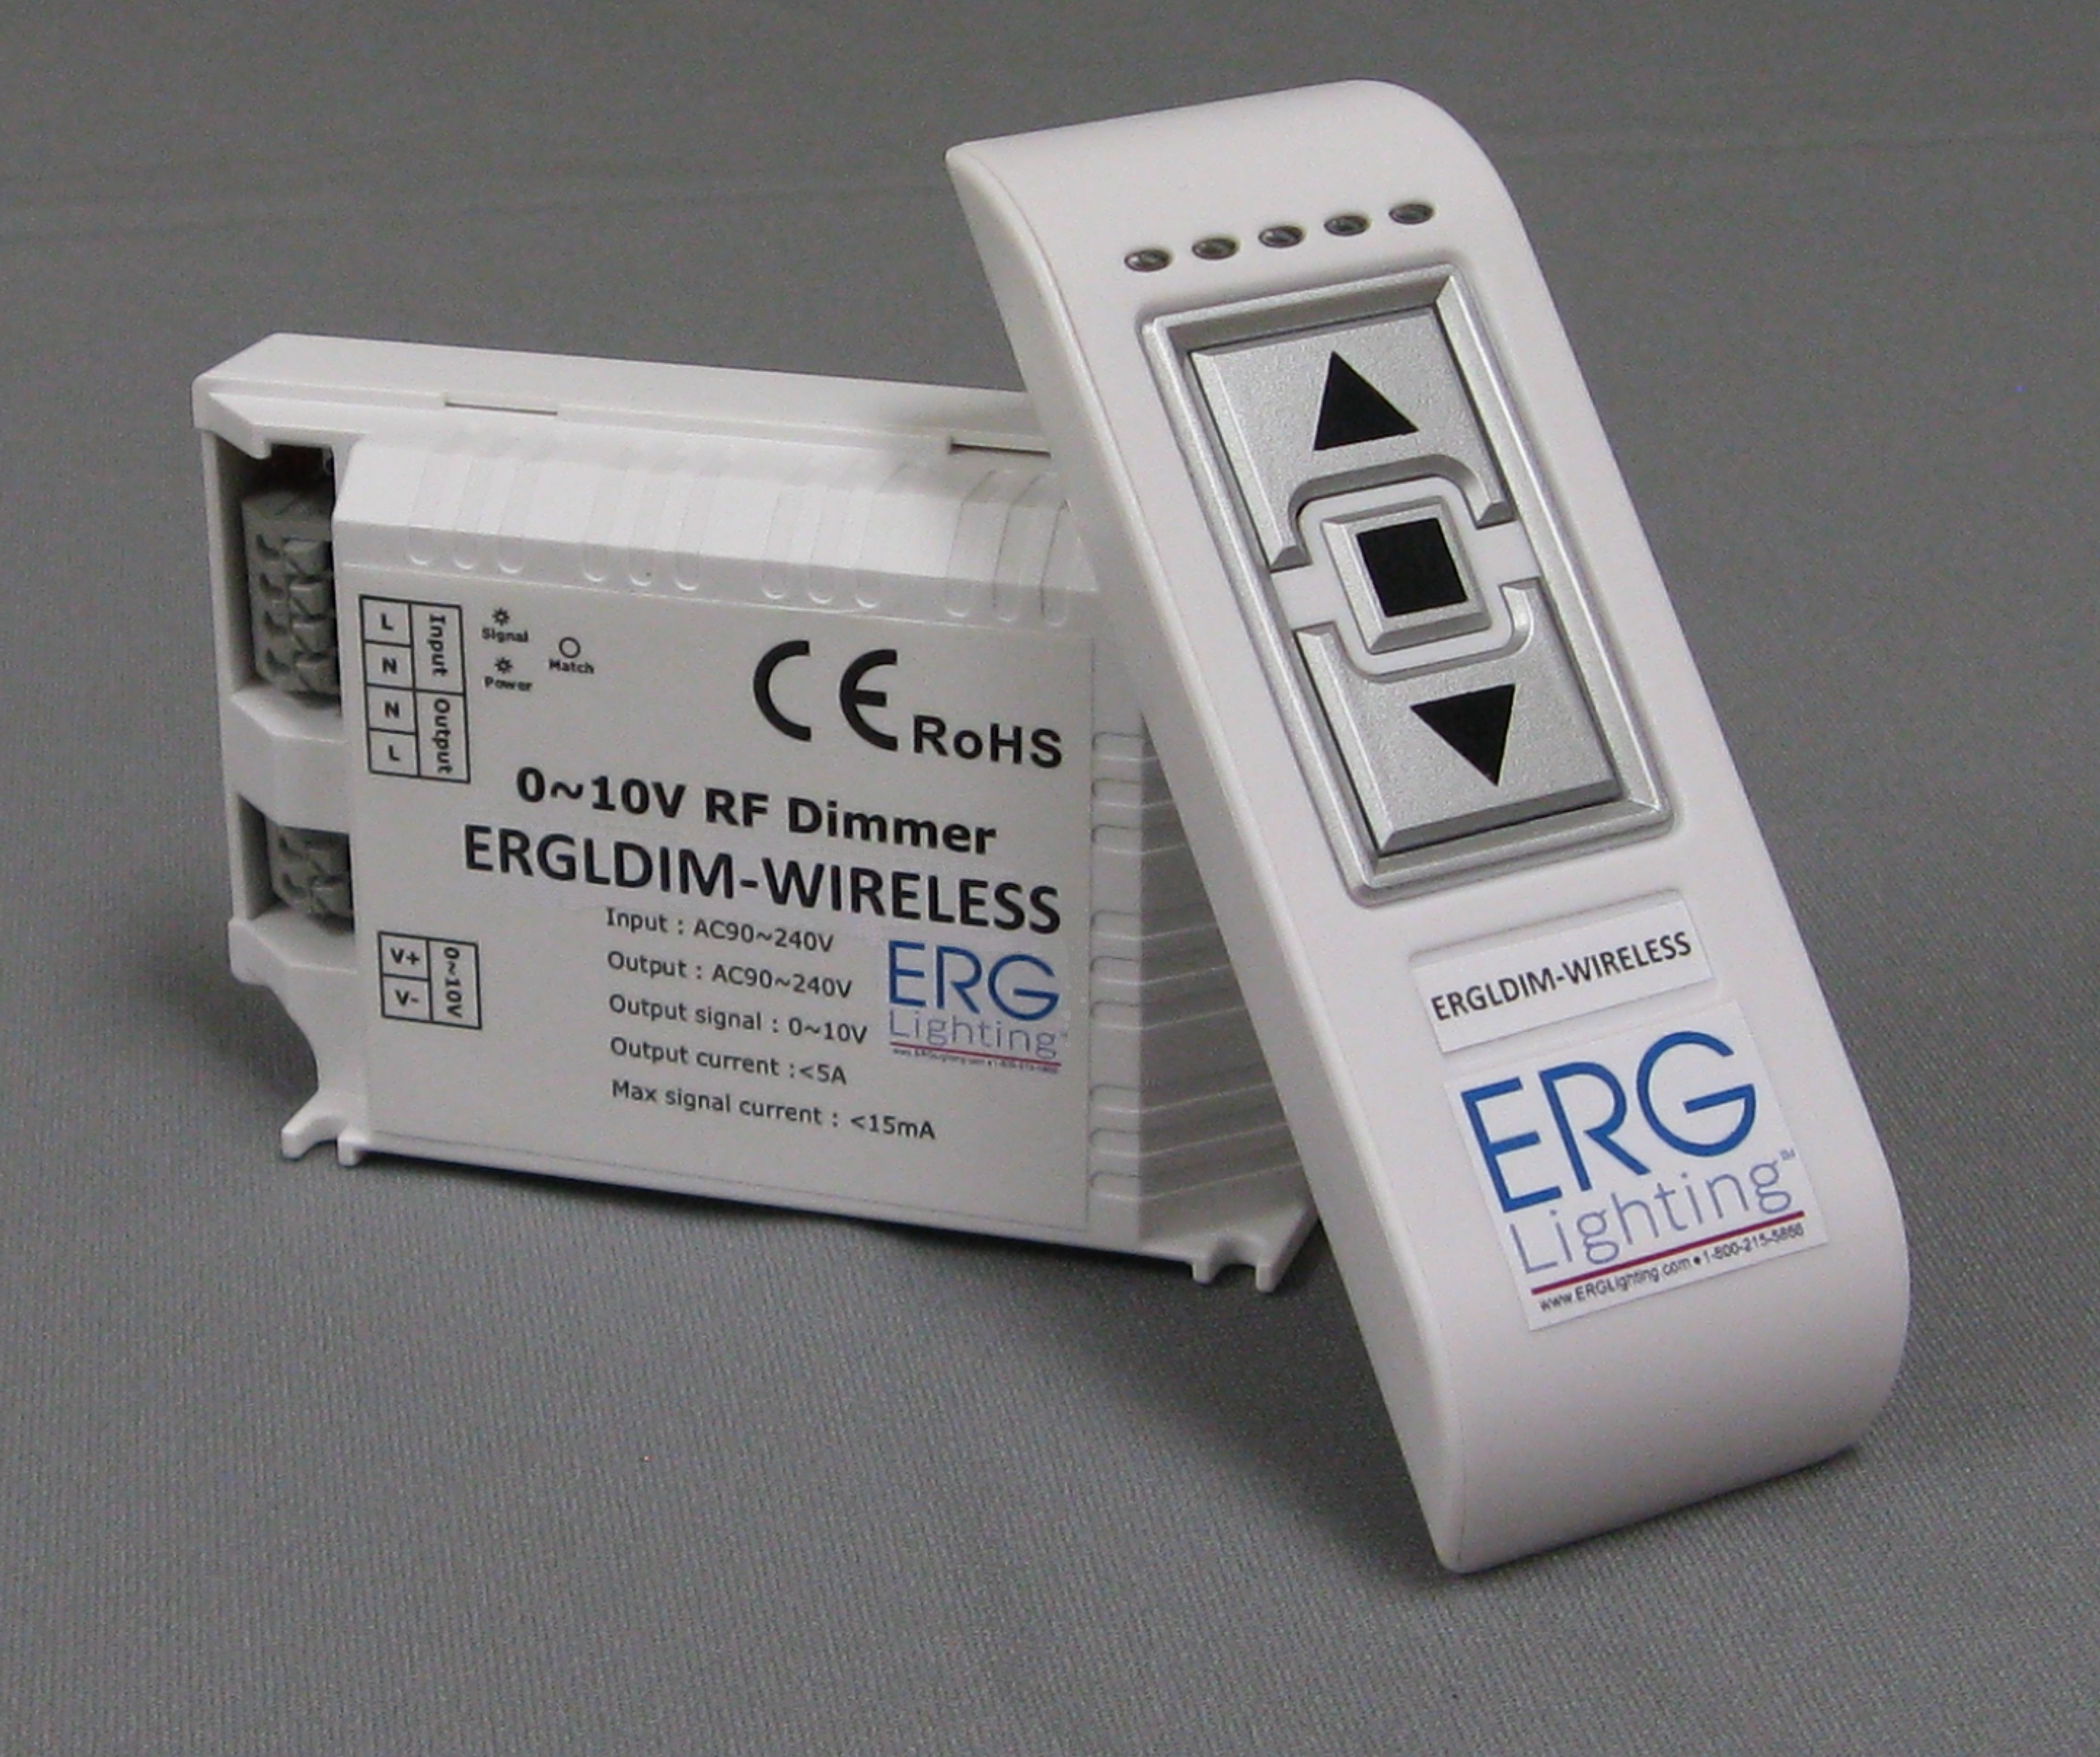 Wireless Dimmer (ERGLDIM-WIRELESS) | ERG Lighting | LED Drivers for Solid State Lighting & Wireless Dimmer (ERGLDIM-WIRELESS) | ERG Lighting | LED Drivers for ...